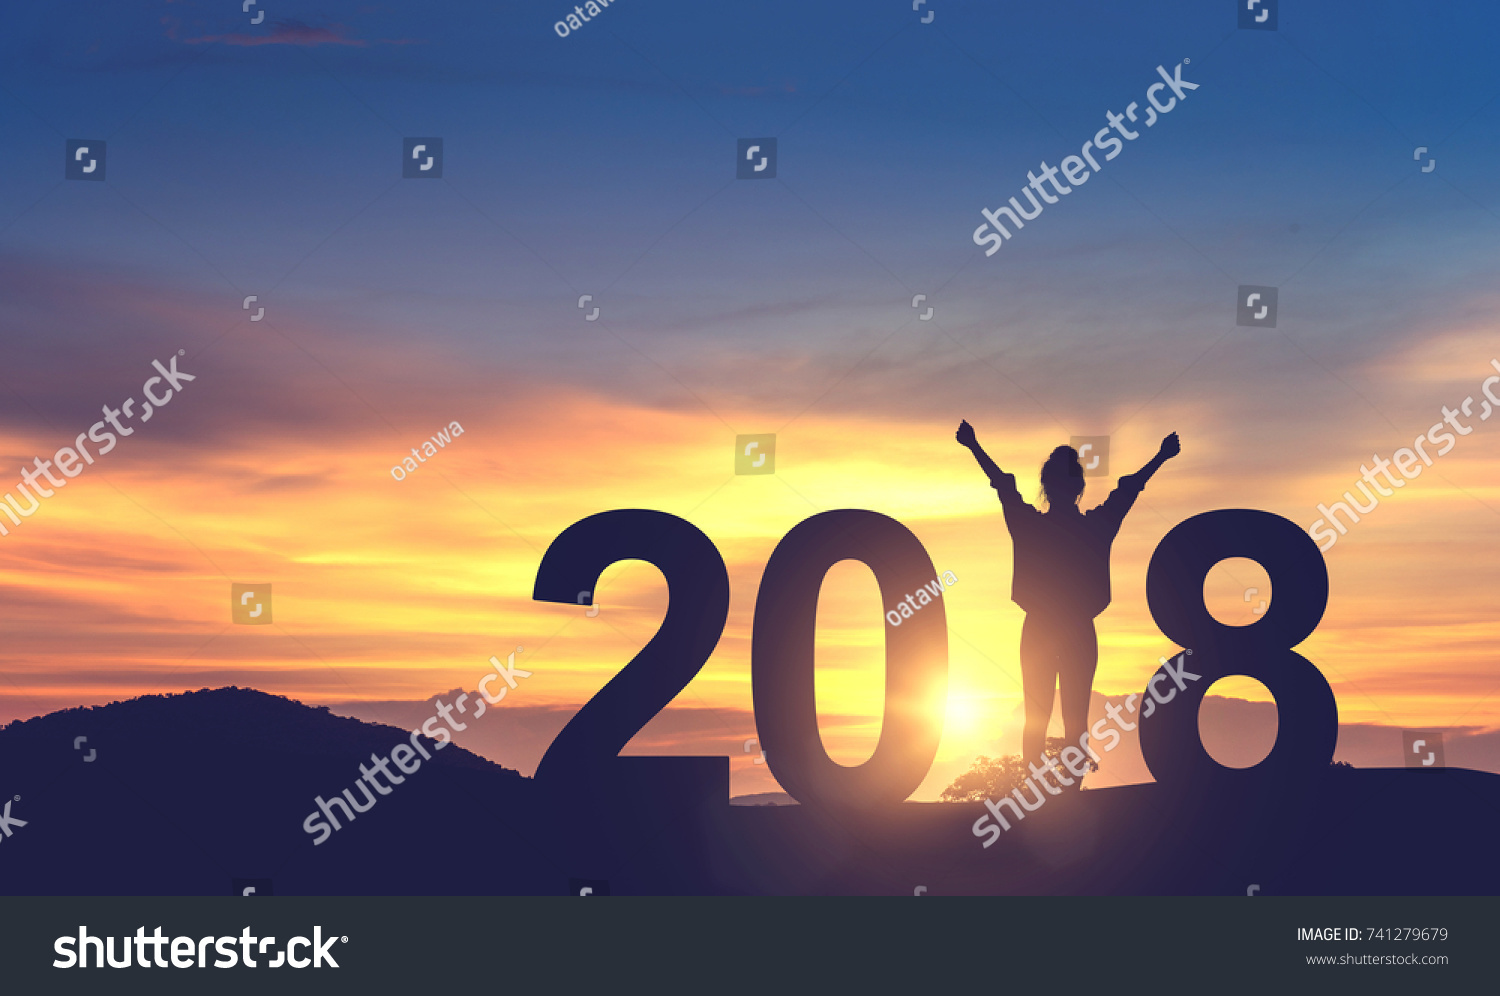 Silhouette freedom young woman Enjoying on the hill and 2018 years while celebrating new year, copy spce. #741279679